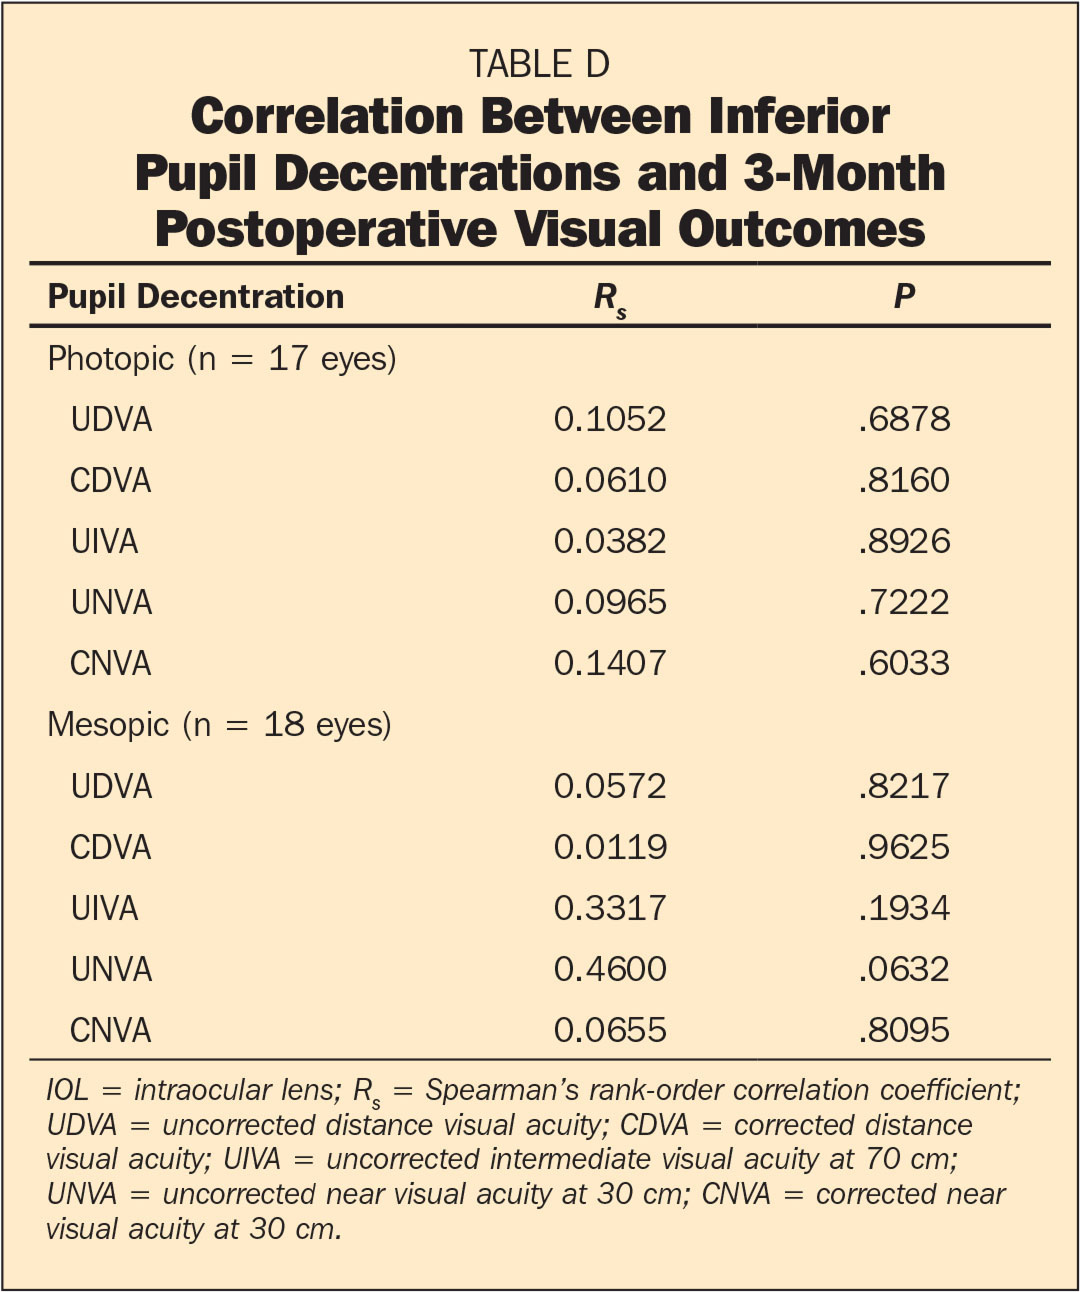 Correlation Between Inferior Pupil Decentrations and 3-Month Postoperative Visual Outcomes